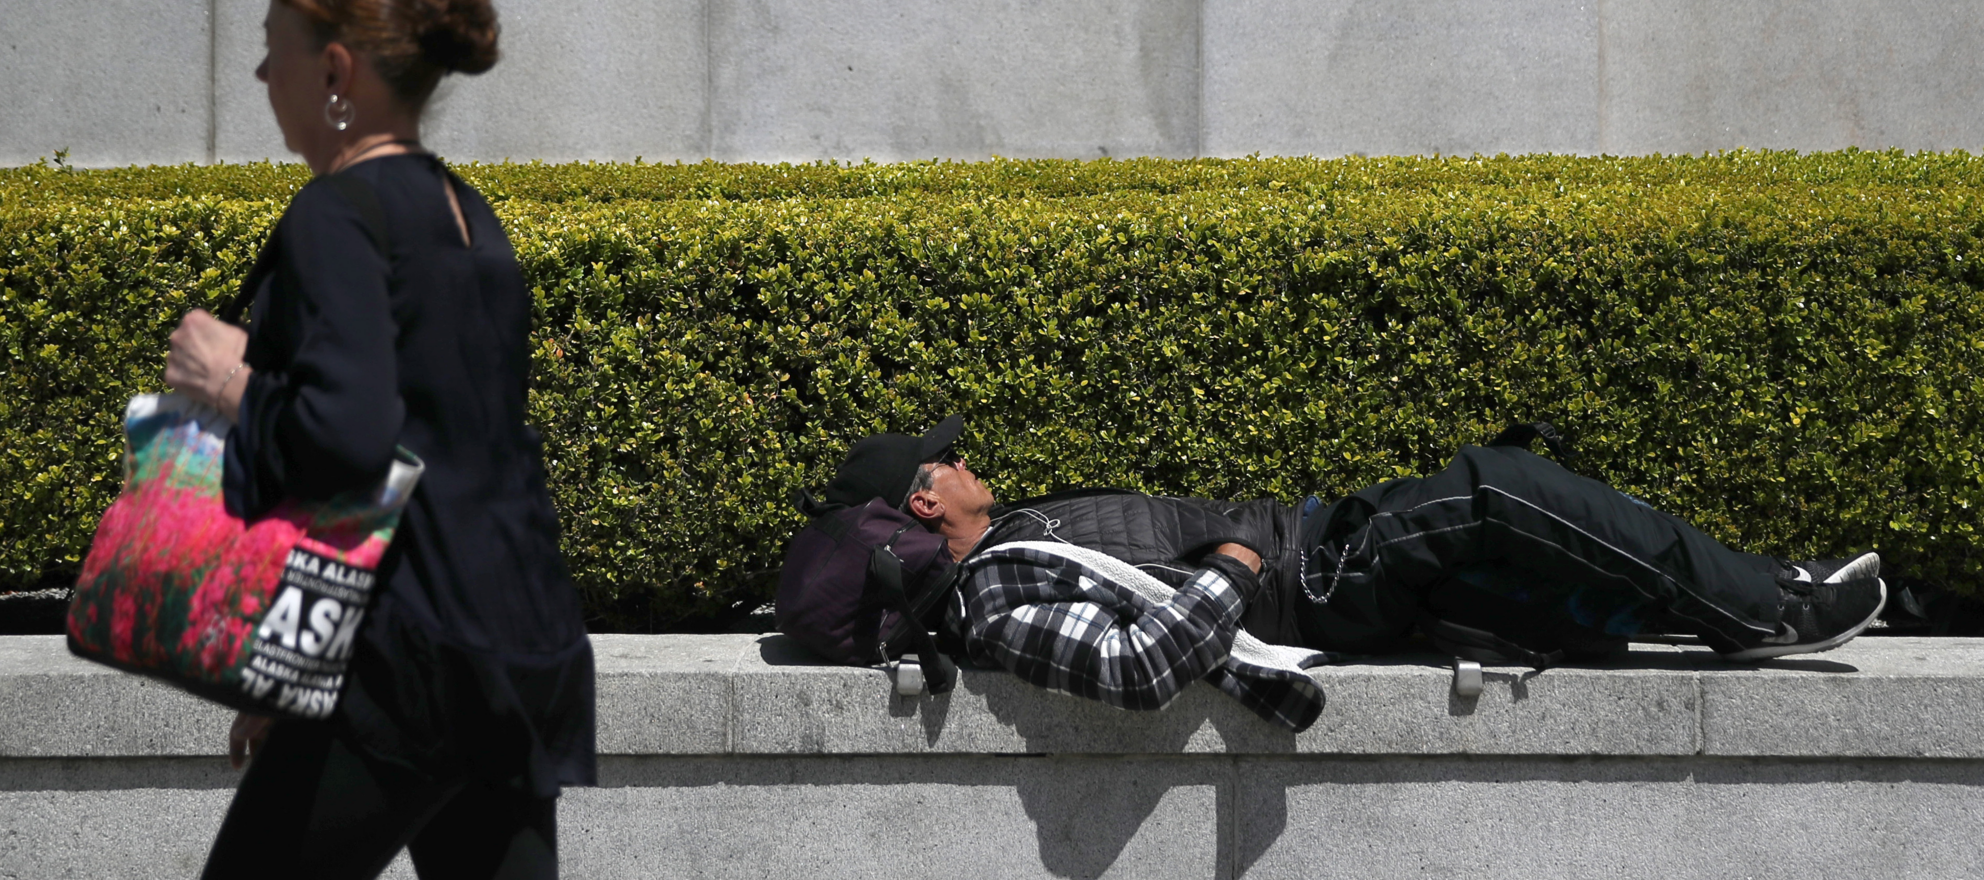 San Francisco at center of battle over 'anti-homeless architecture'